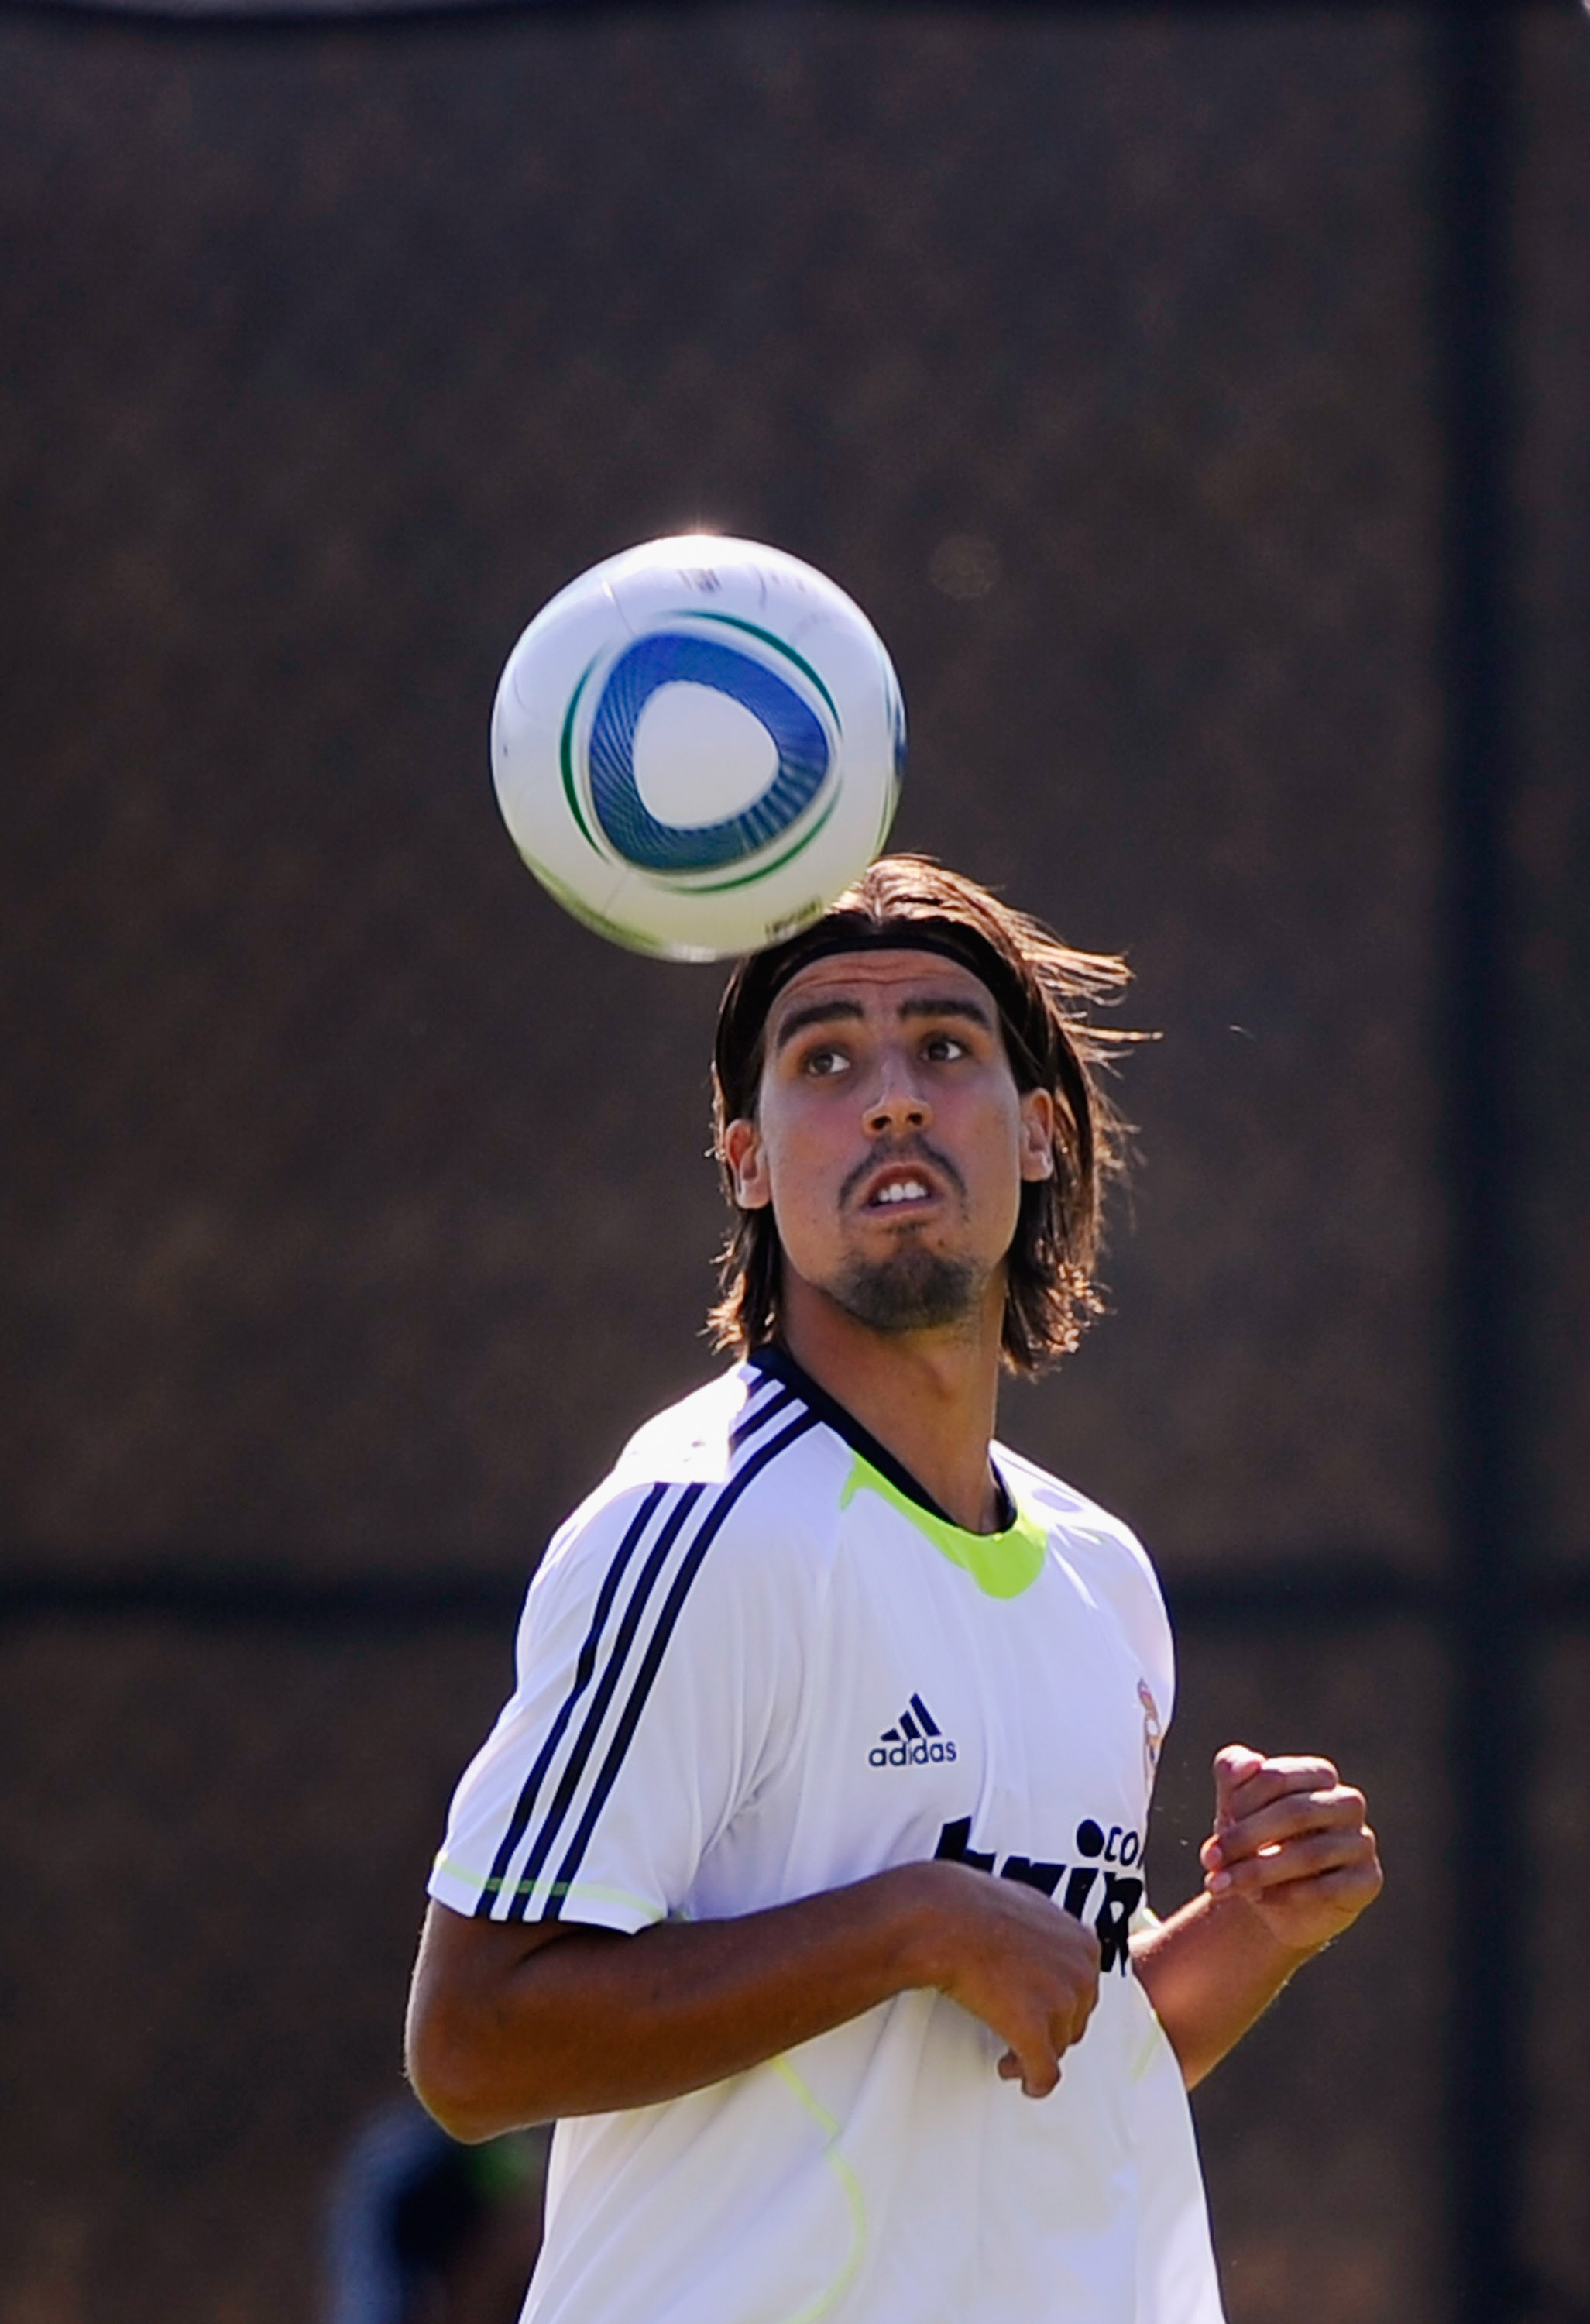 LOS ANGELES, CA - AUGUST 03:  Sami Khedira of Real Madrid controls the ball during training session on the campus of UCLA on August 3, 2010 in Los Angeles, California. Real Madrid will play Club America of Mexico in San Francisco, California, on August 4